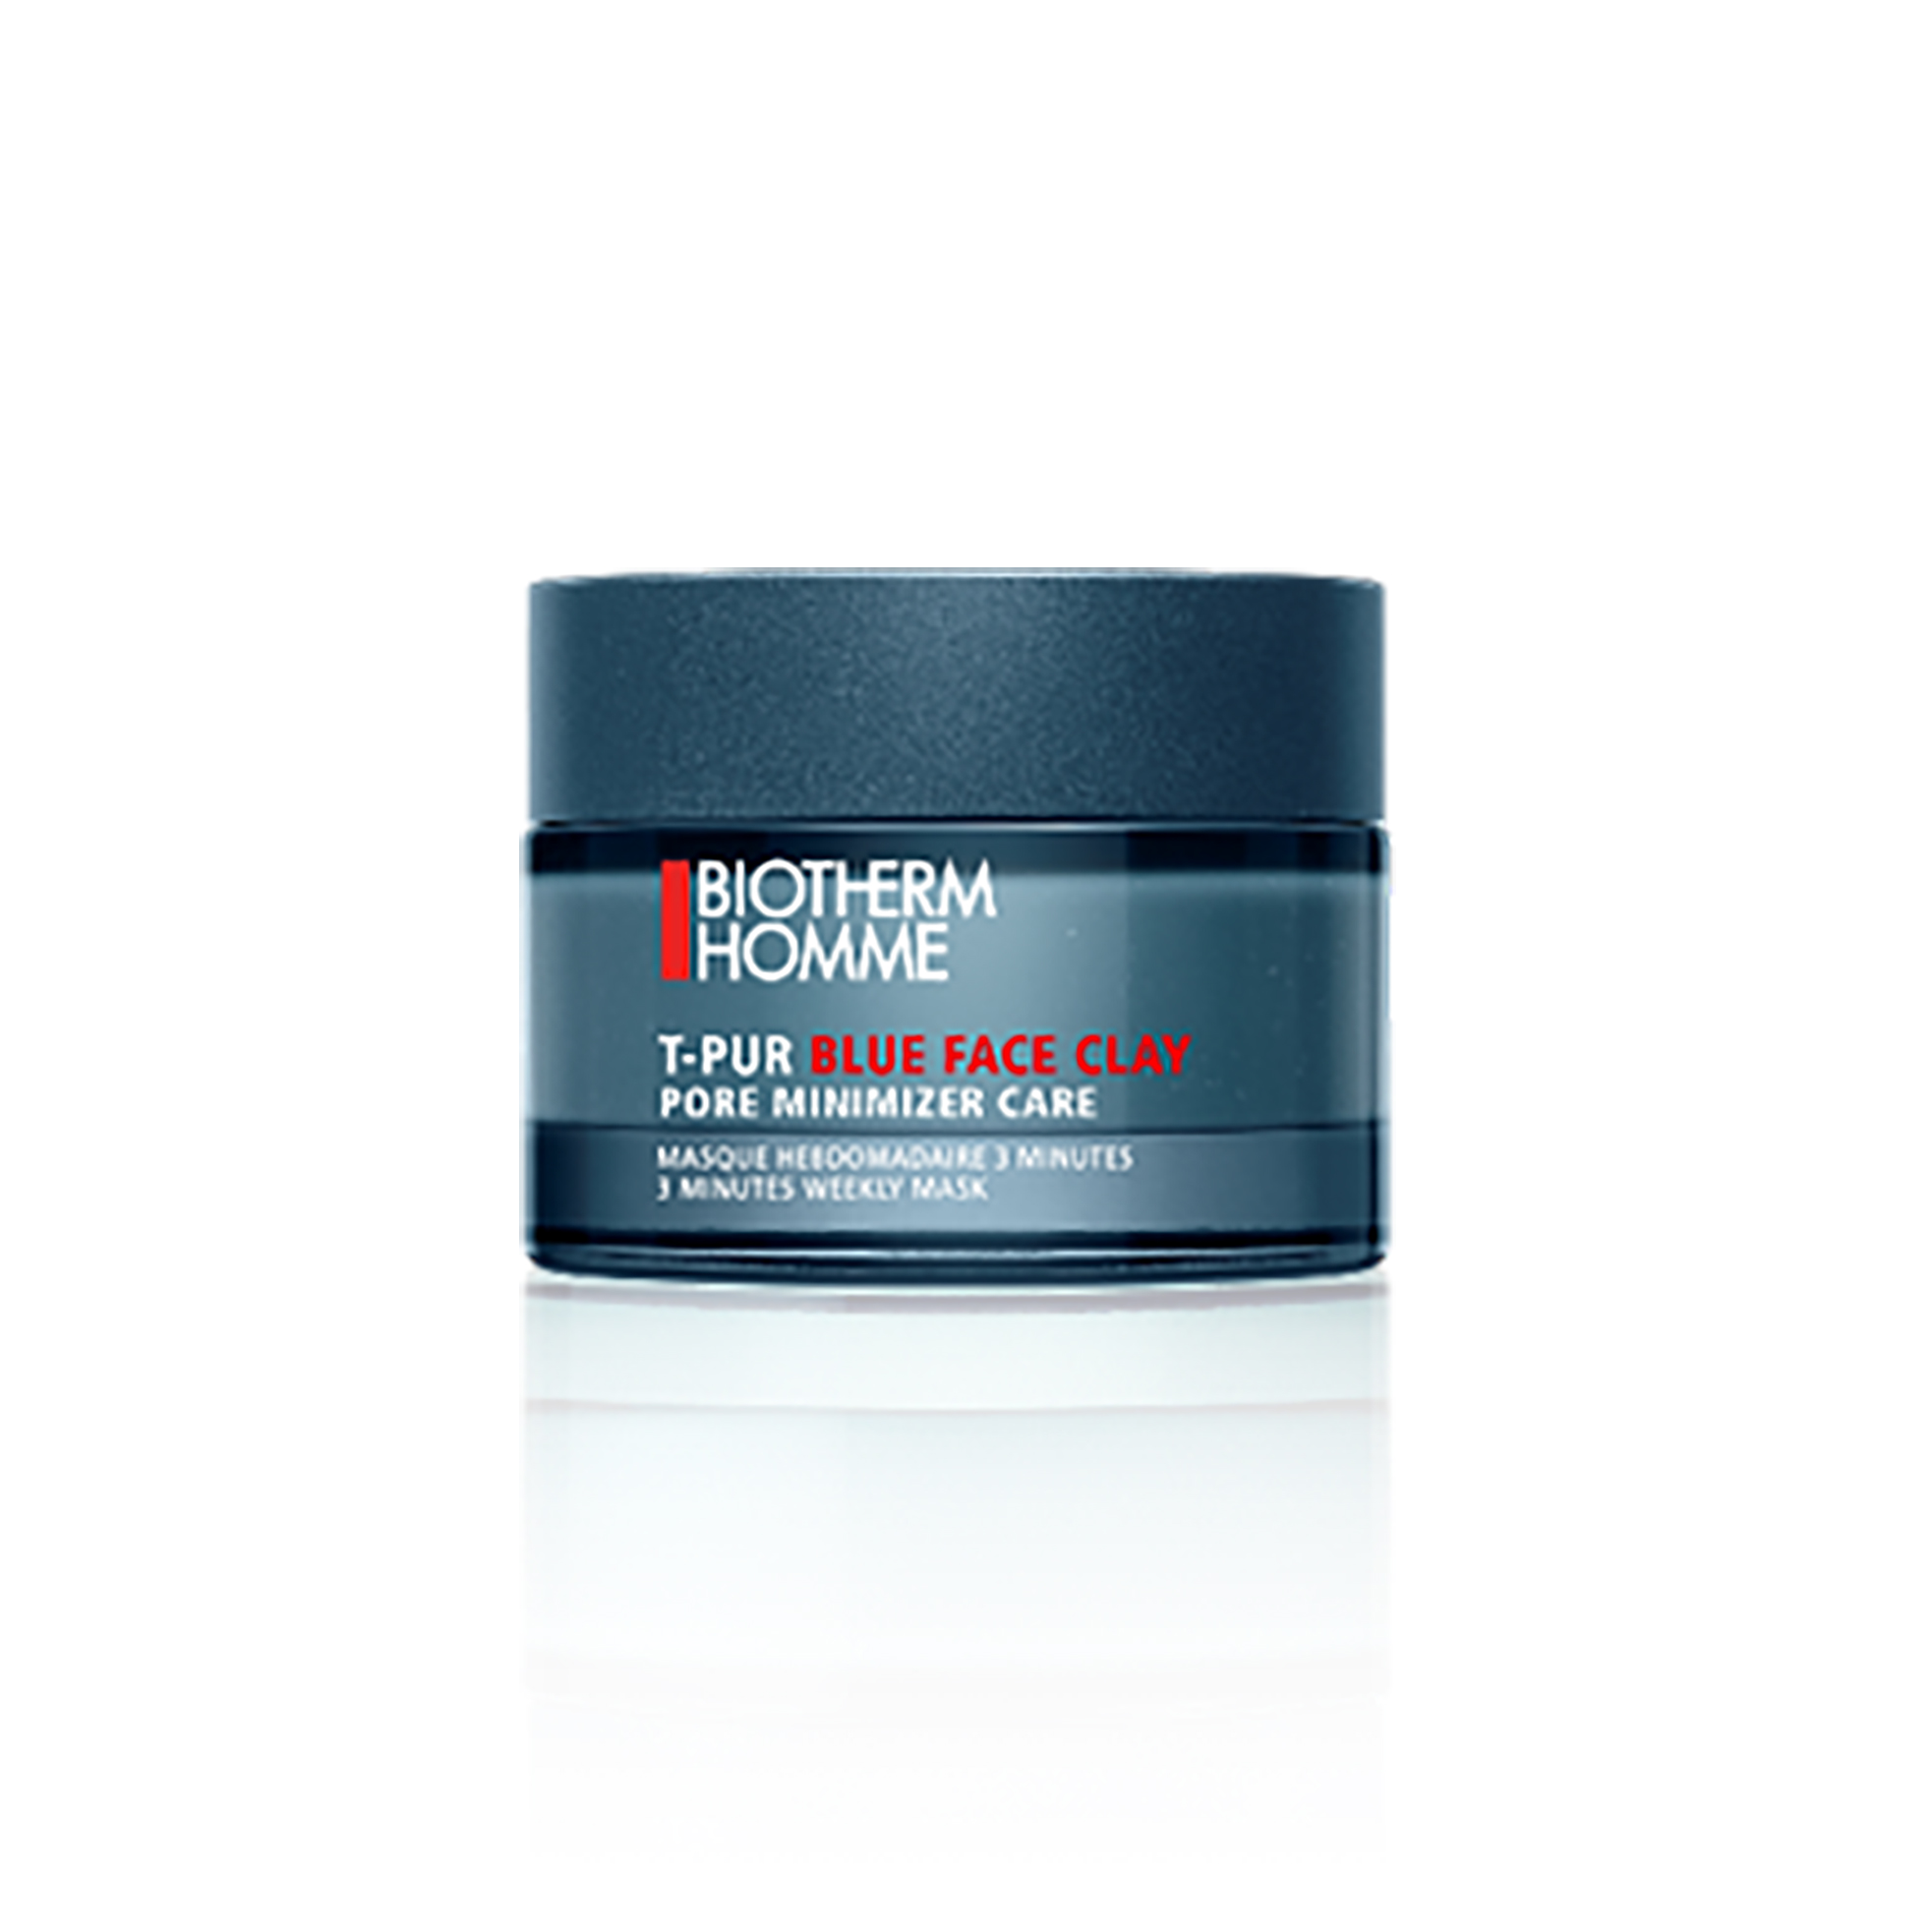 T-Pur Blue Face Clay Mask 50ml